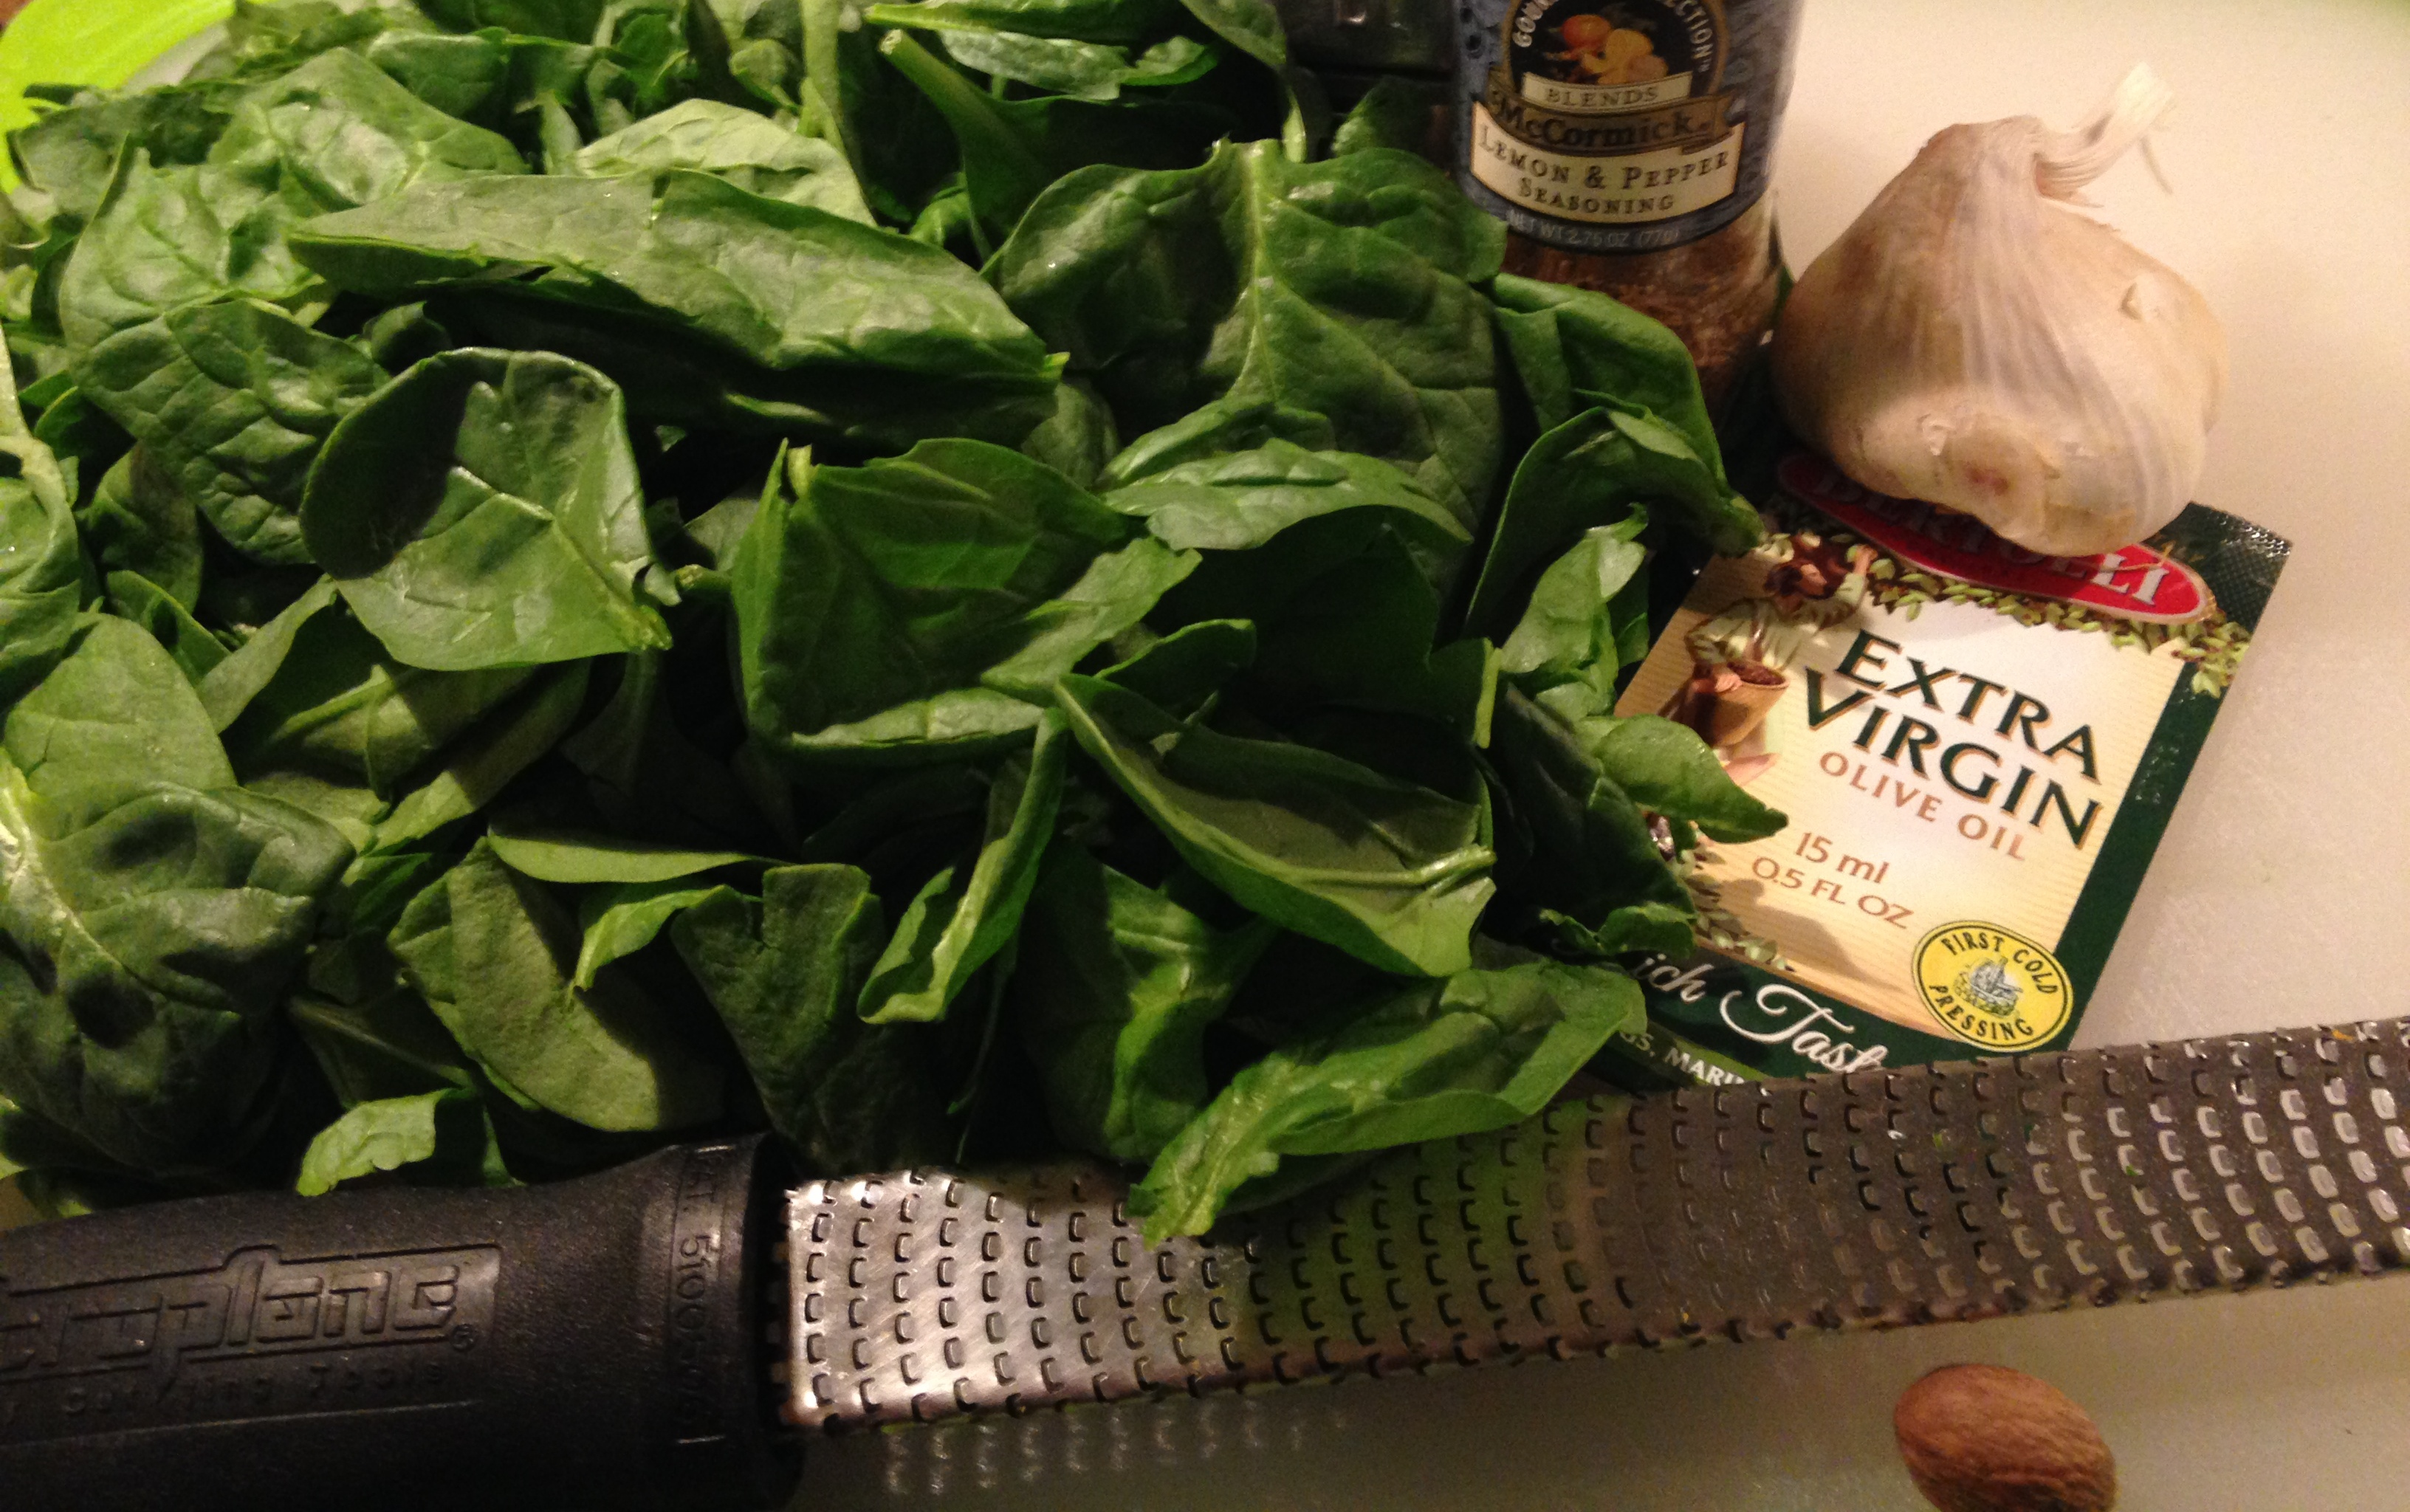 5 Minute Veggie – Sauteed Spinach